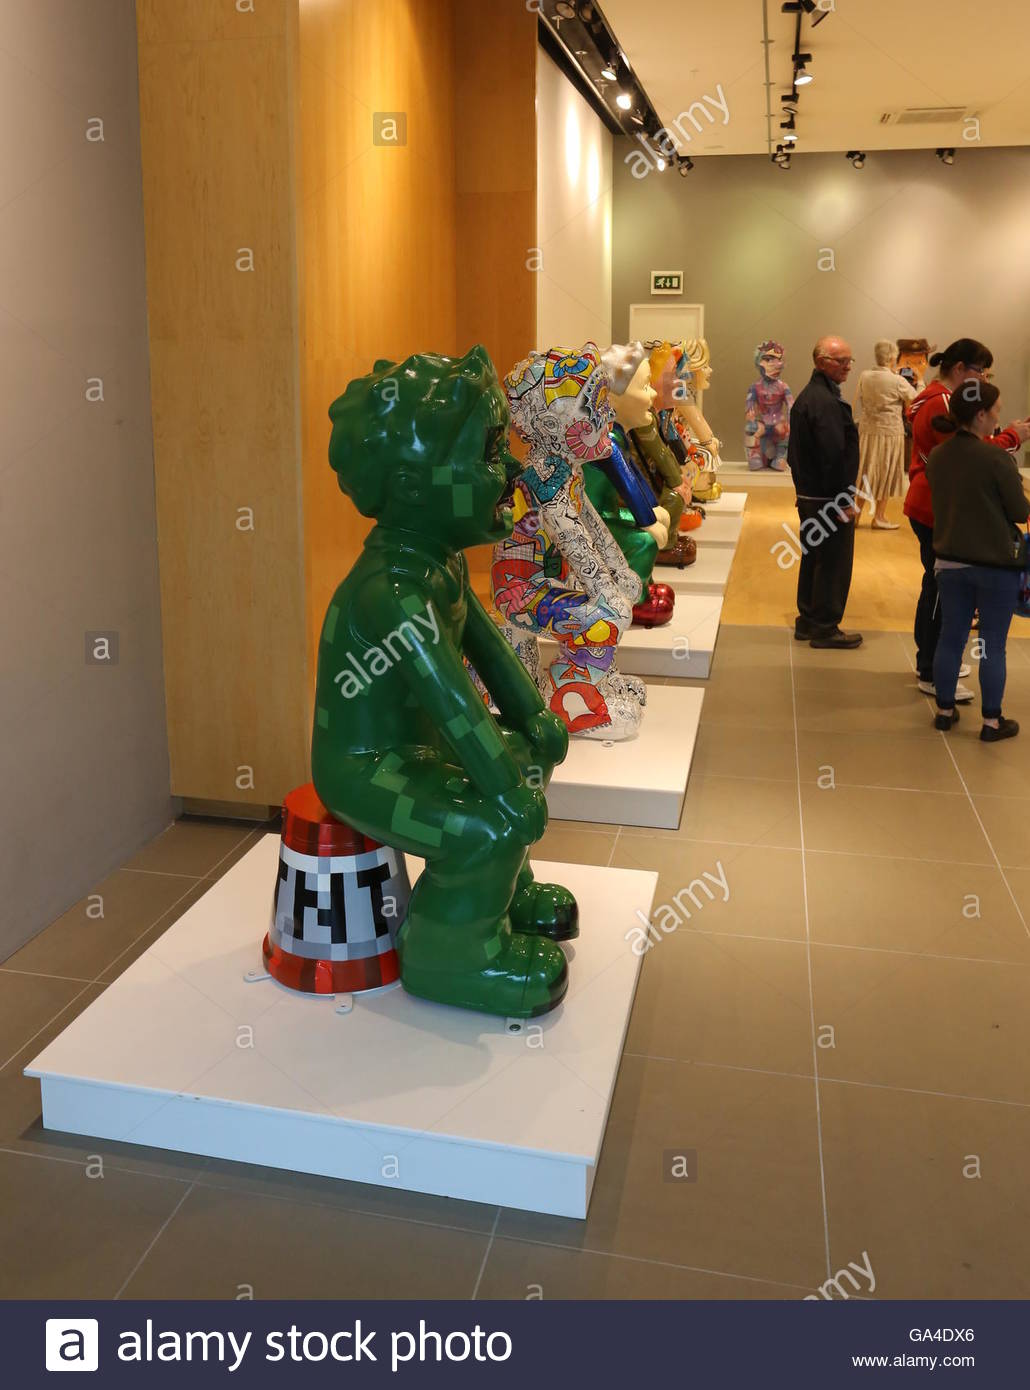 Statues of Oor Wullie at Bucket Trail headquarters in Overgate Dundee before heading off on a tour of Scotland  - Stock Image